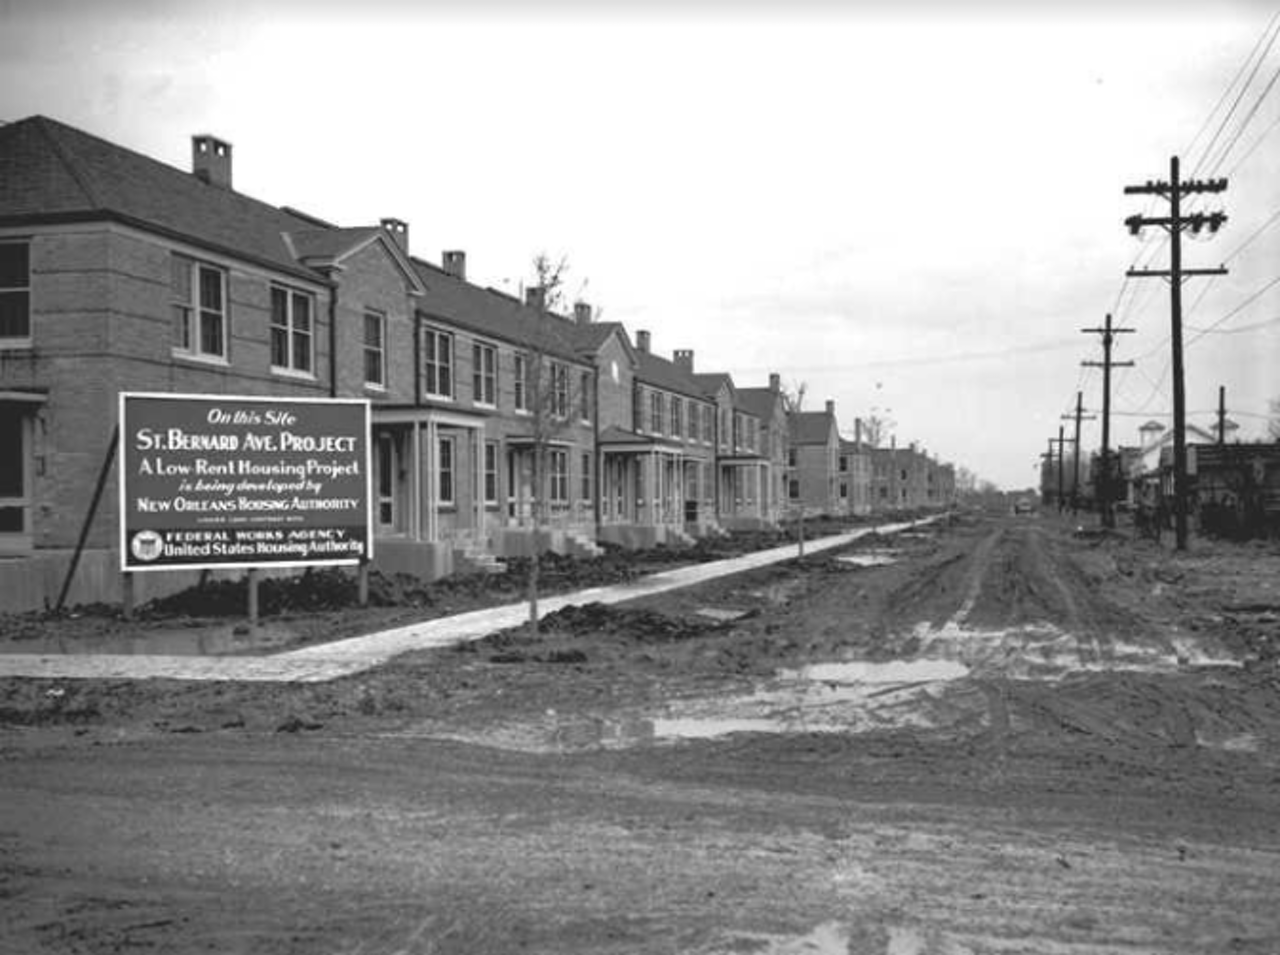 The St. Bernard public housing development was built in the late 1930s amid a surge of government concern for people's well-being.